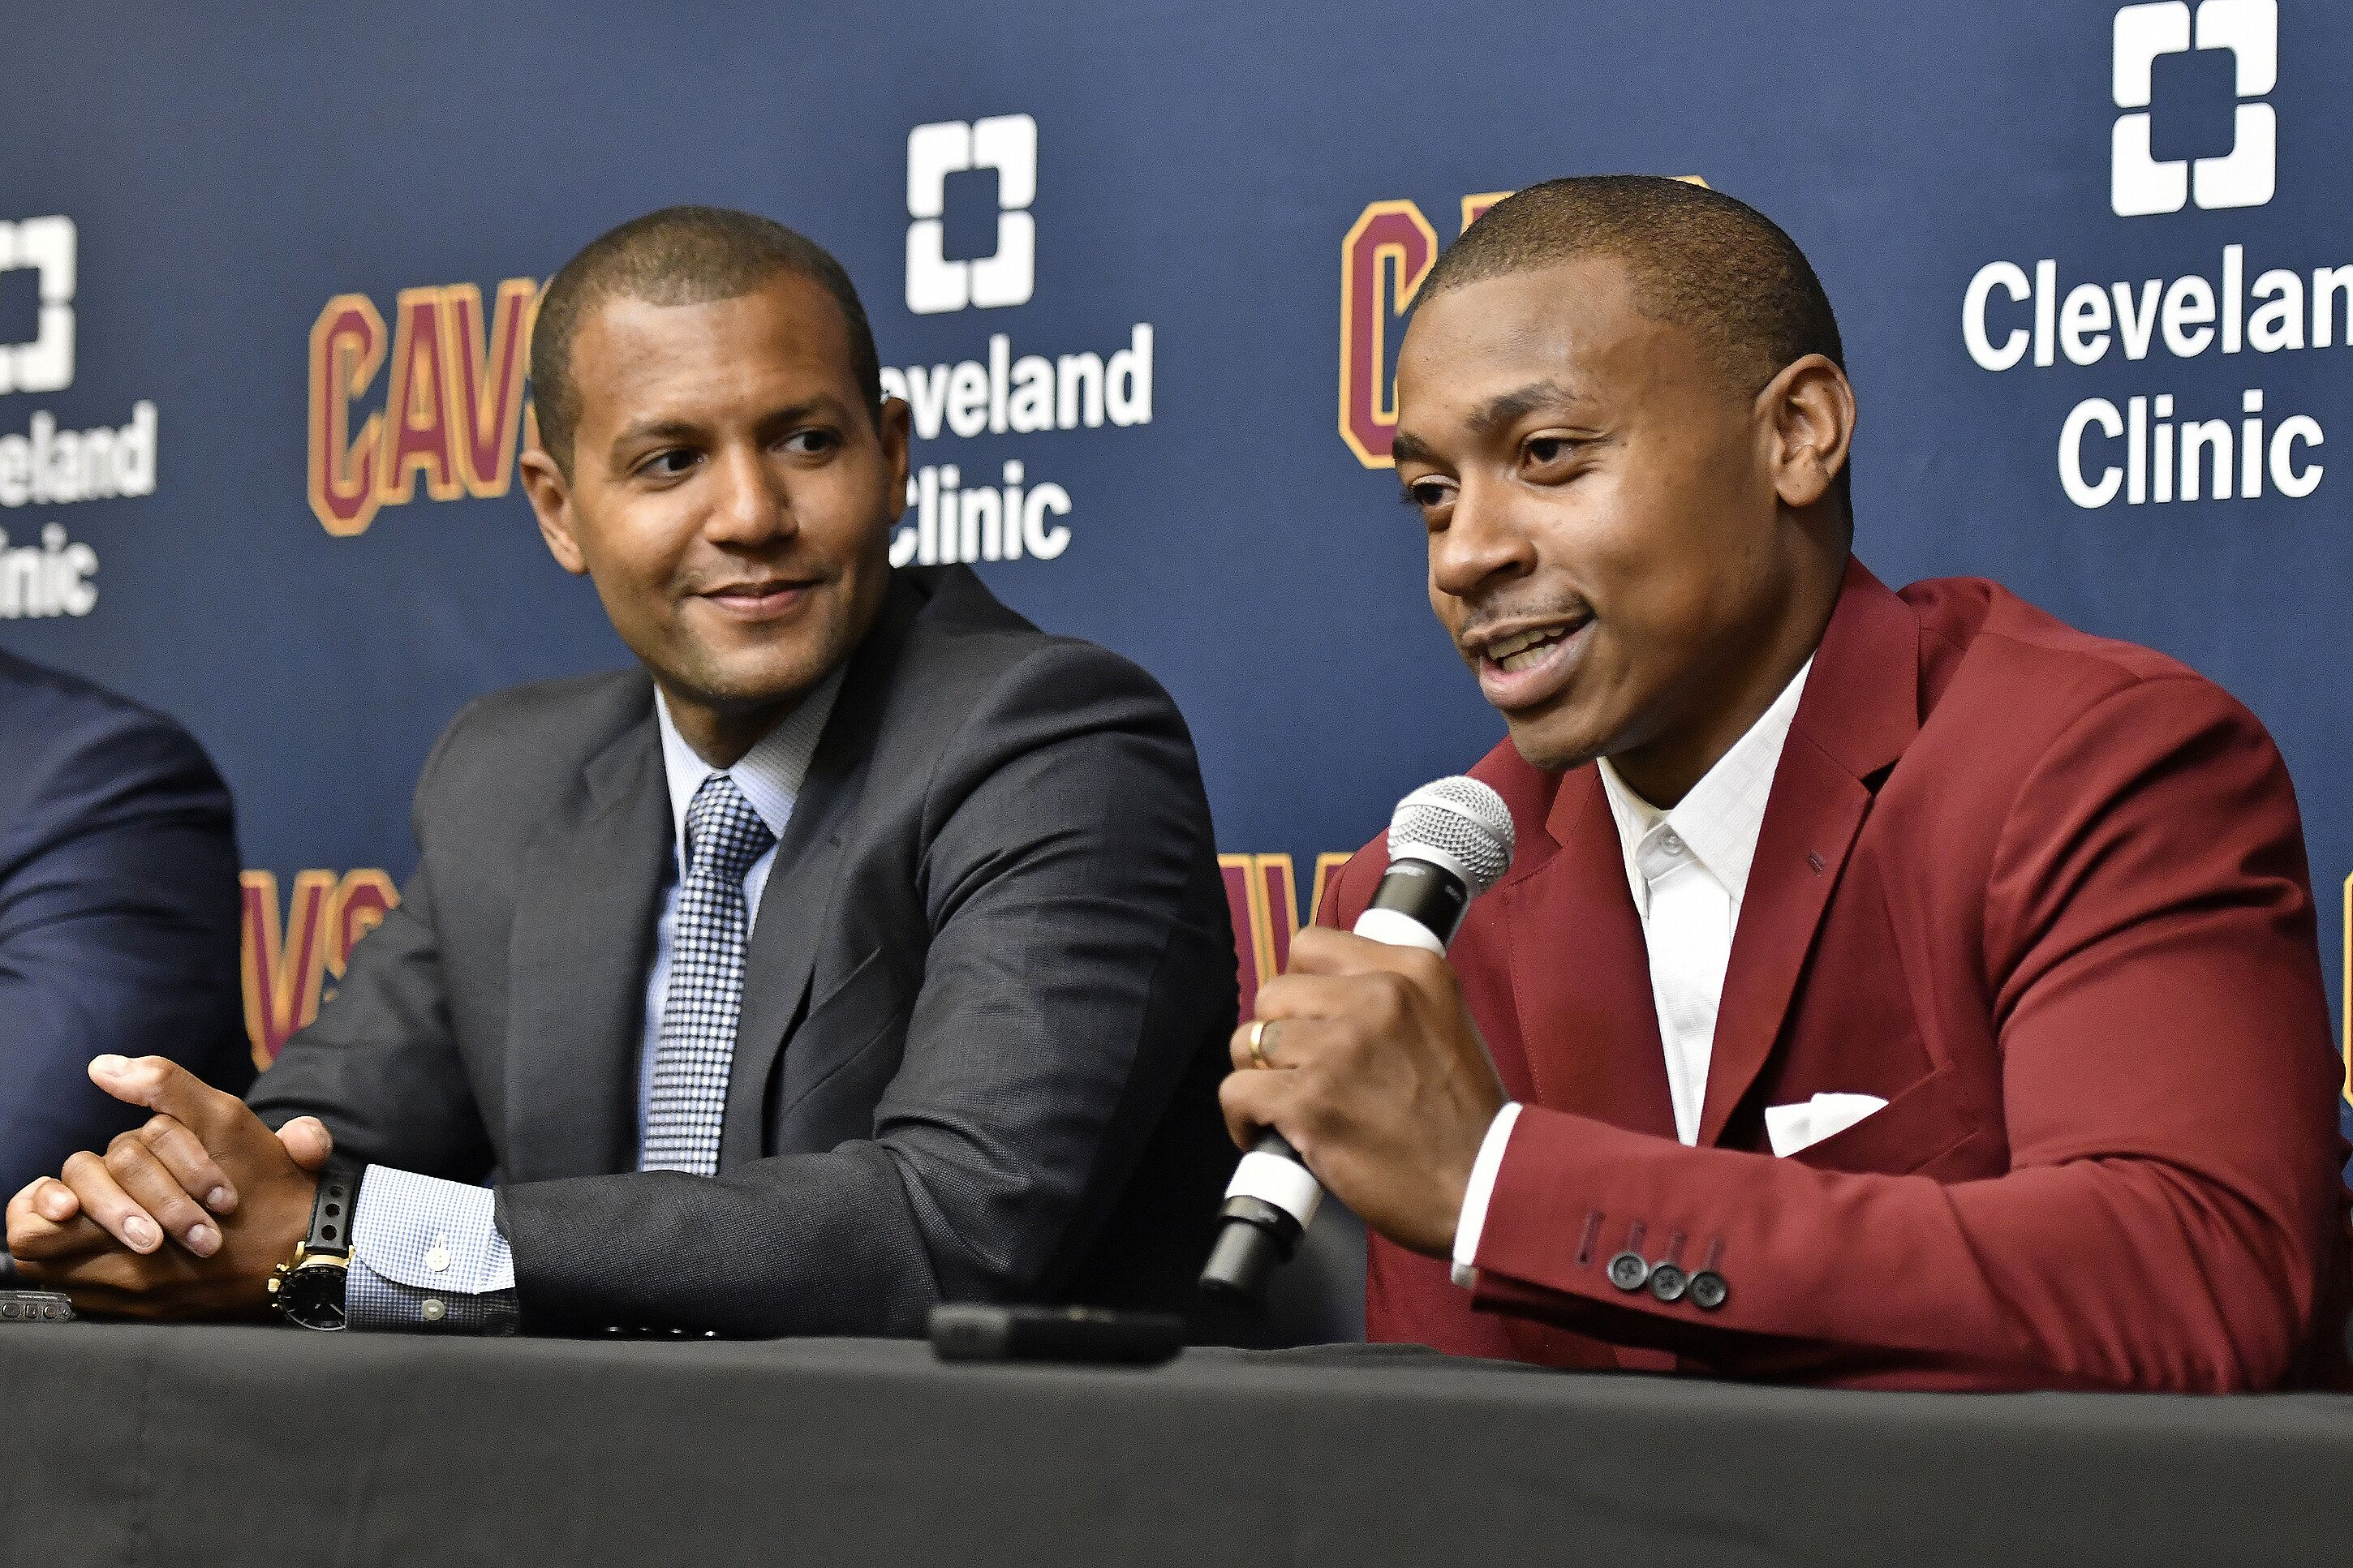 843818714-cleveland-cavaliers-introduce-isaiah-thomas-jae-crowder-and-ante-zizic.jpg